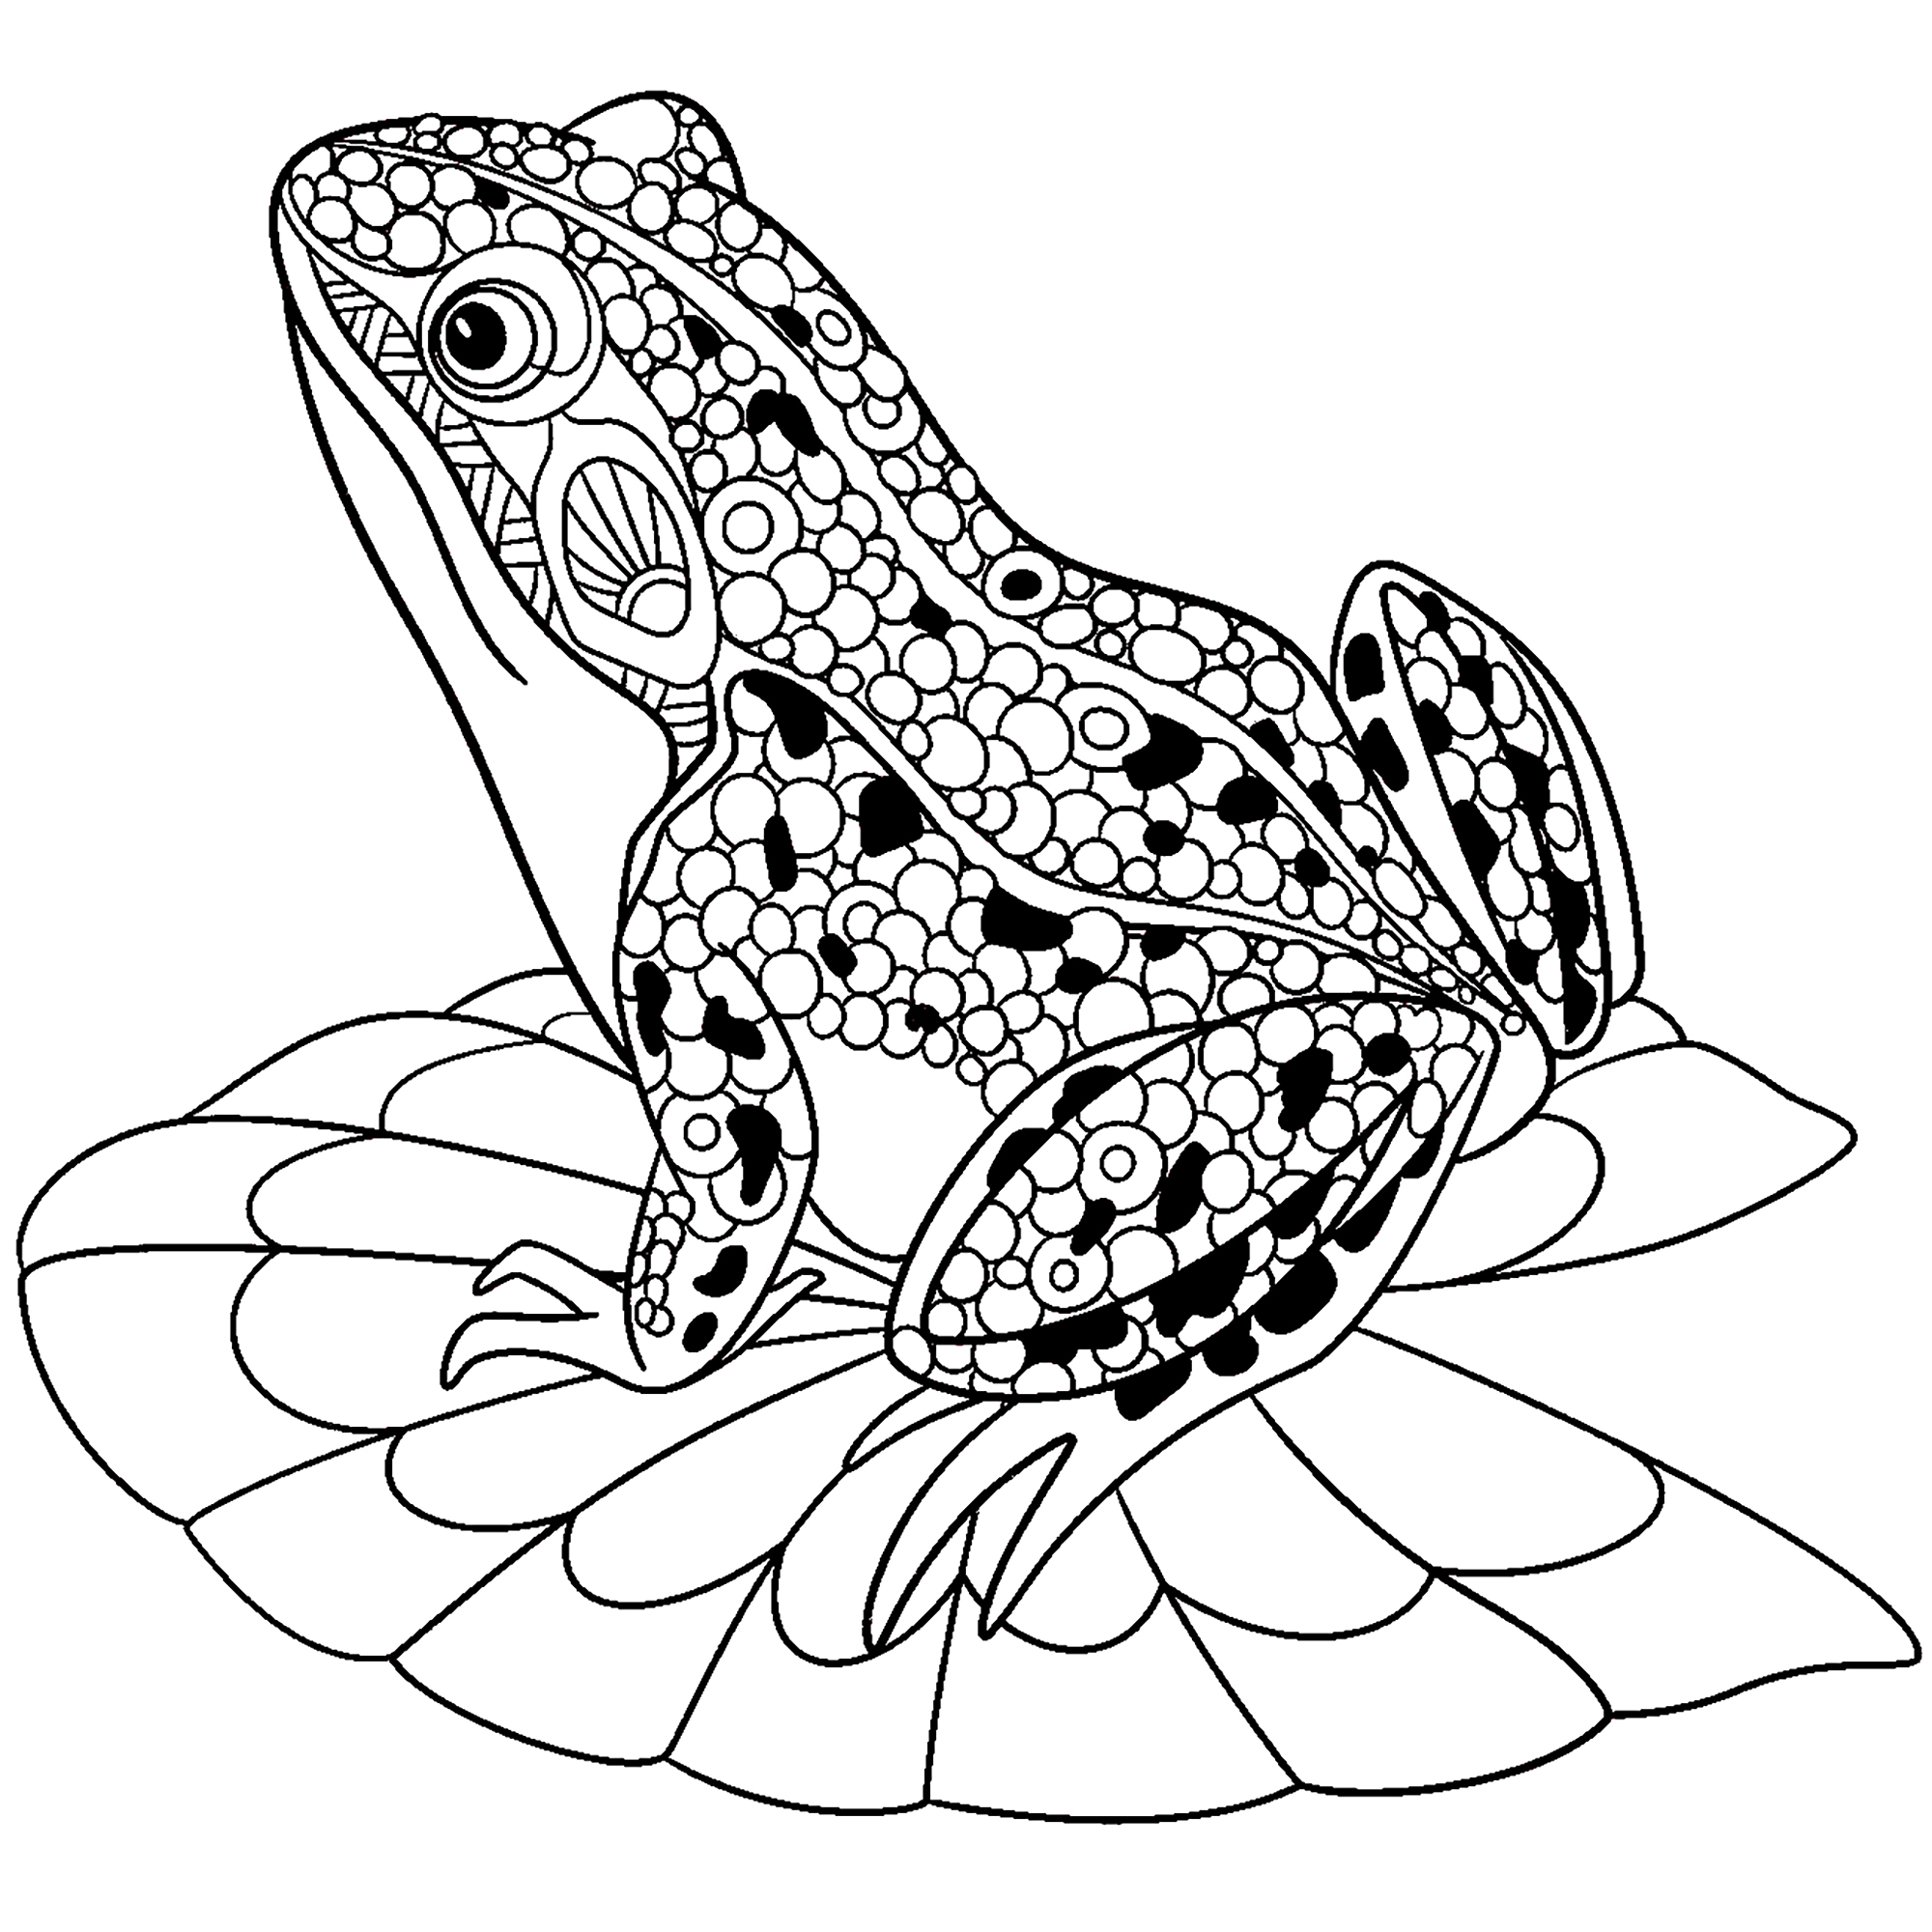 frogs to color for free frogs free to color for children frogs kids coloring pages frogs to free for color